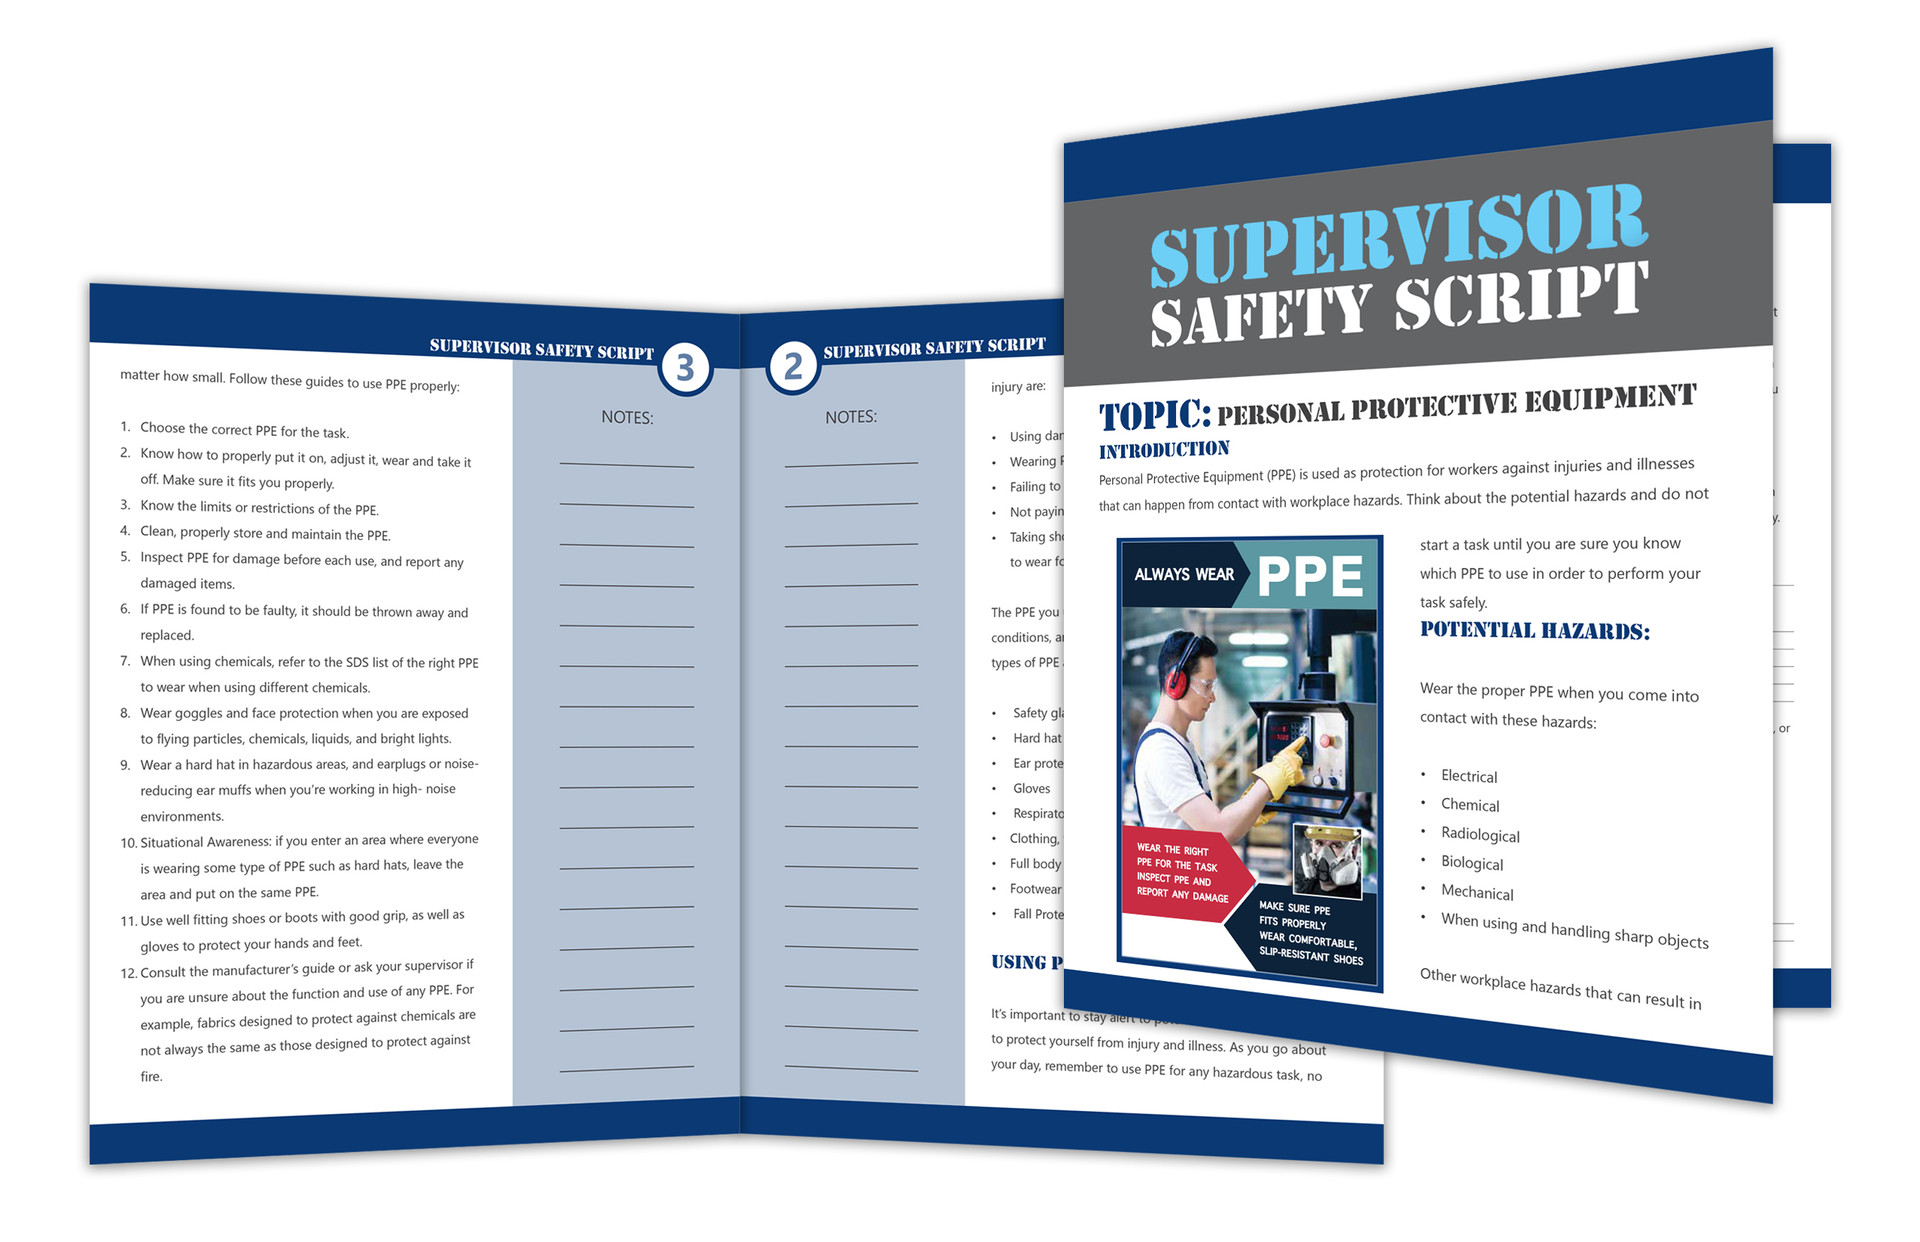 SUPERVISOR SAFETY SCRIPT